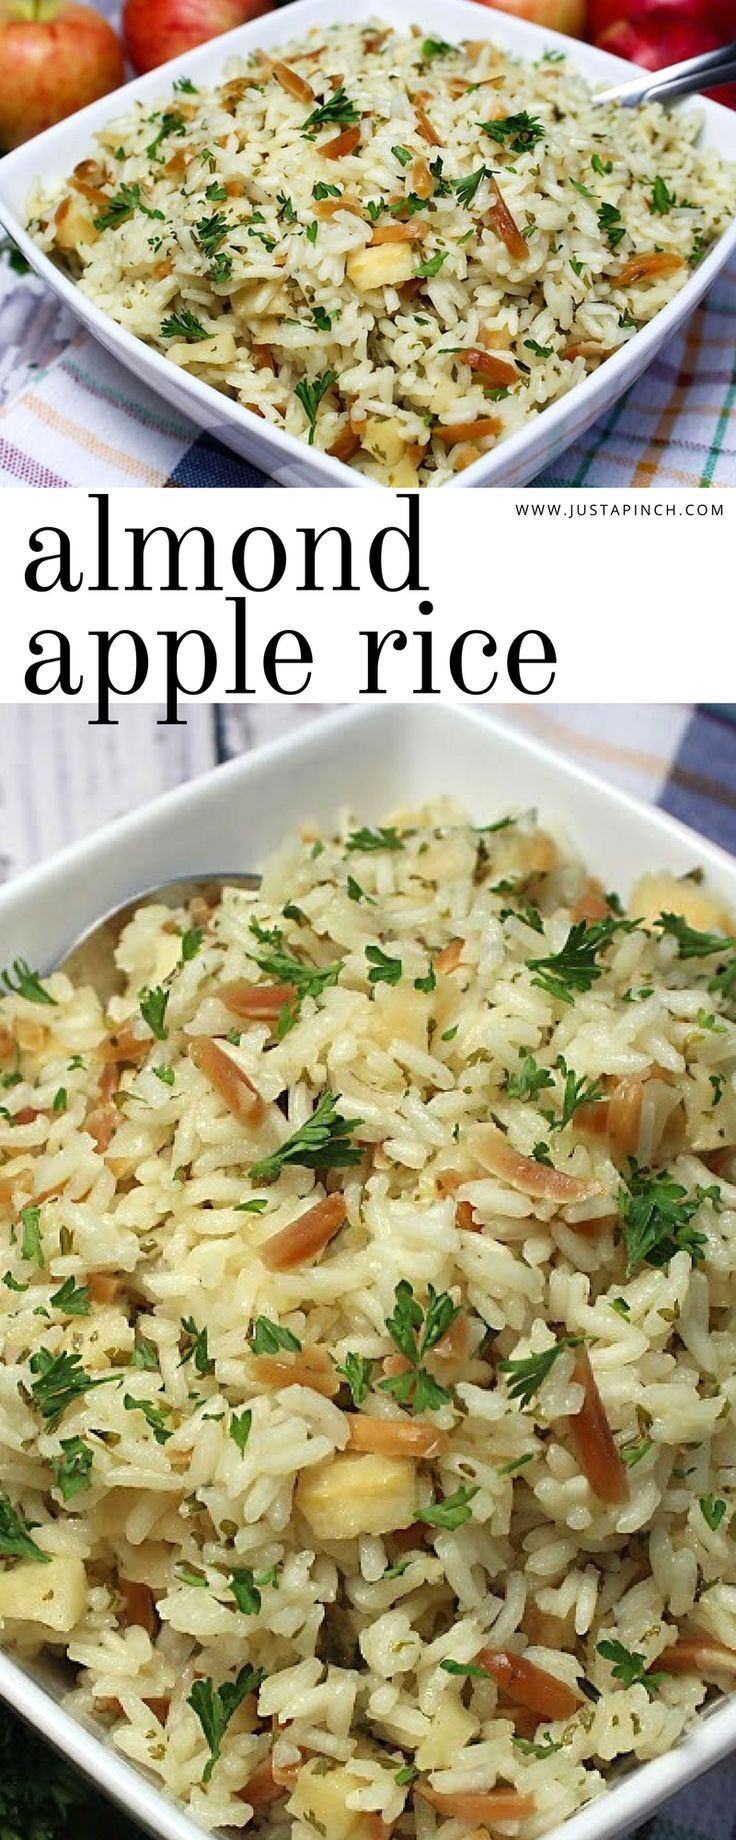 Easy jazzed up rice recipe - we love this almond apple rice, a great fall side dish recipe! #sidedish #ricerecipe